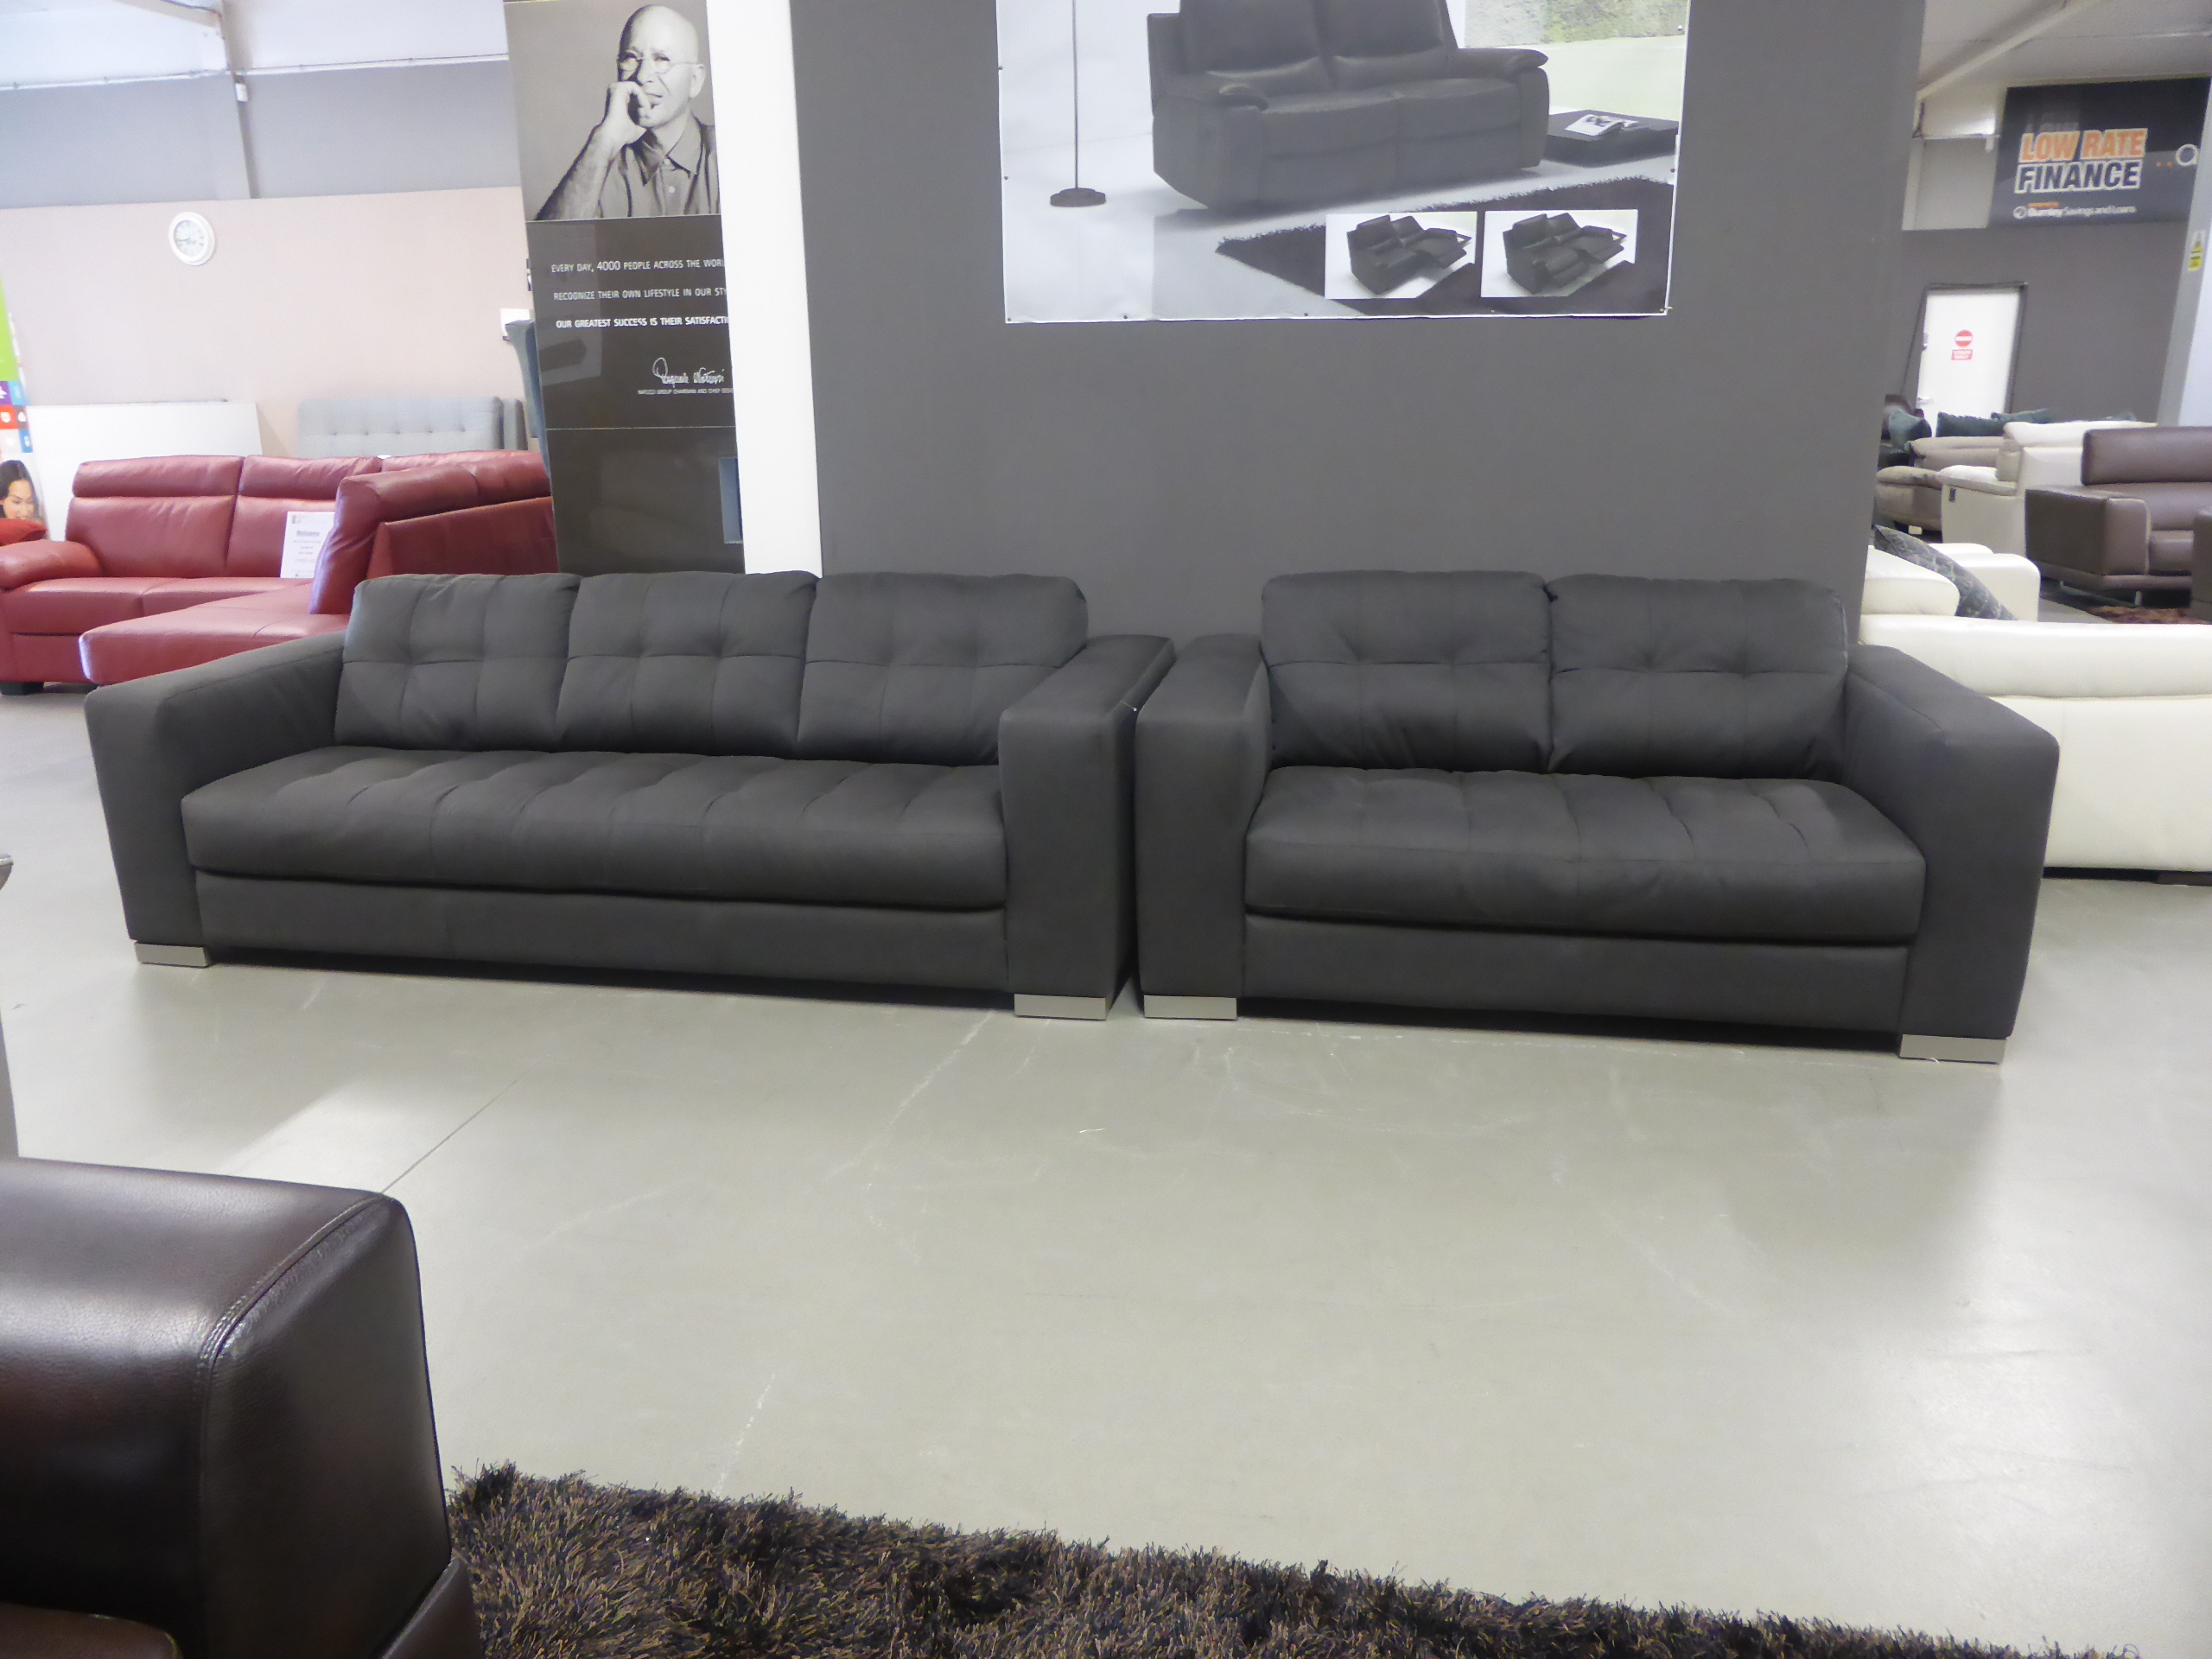 grey fabric sofa uk small 2 seater leather bed natuzzi group furnimax brands outlet